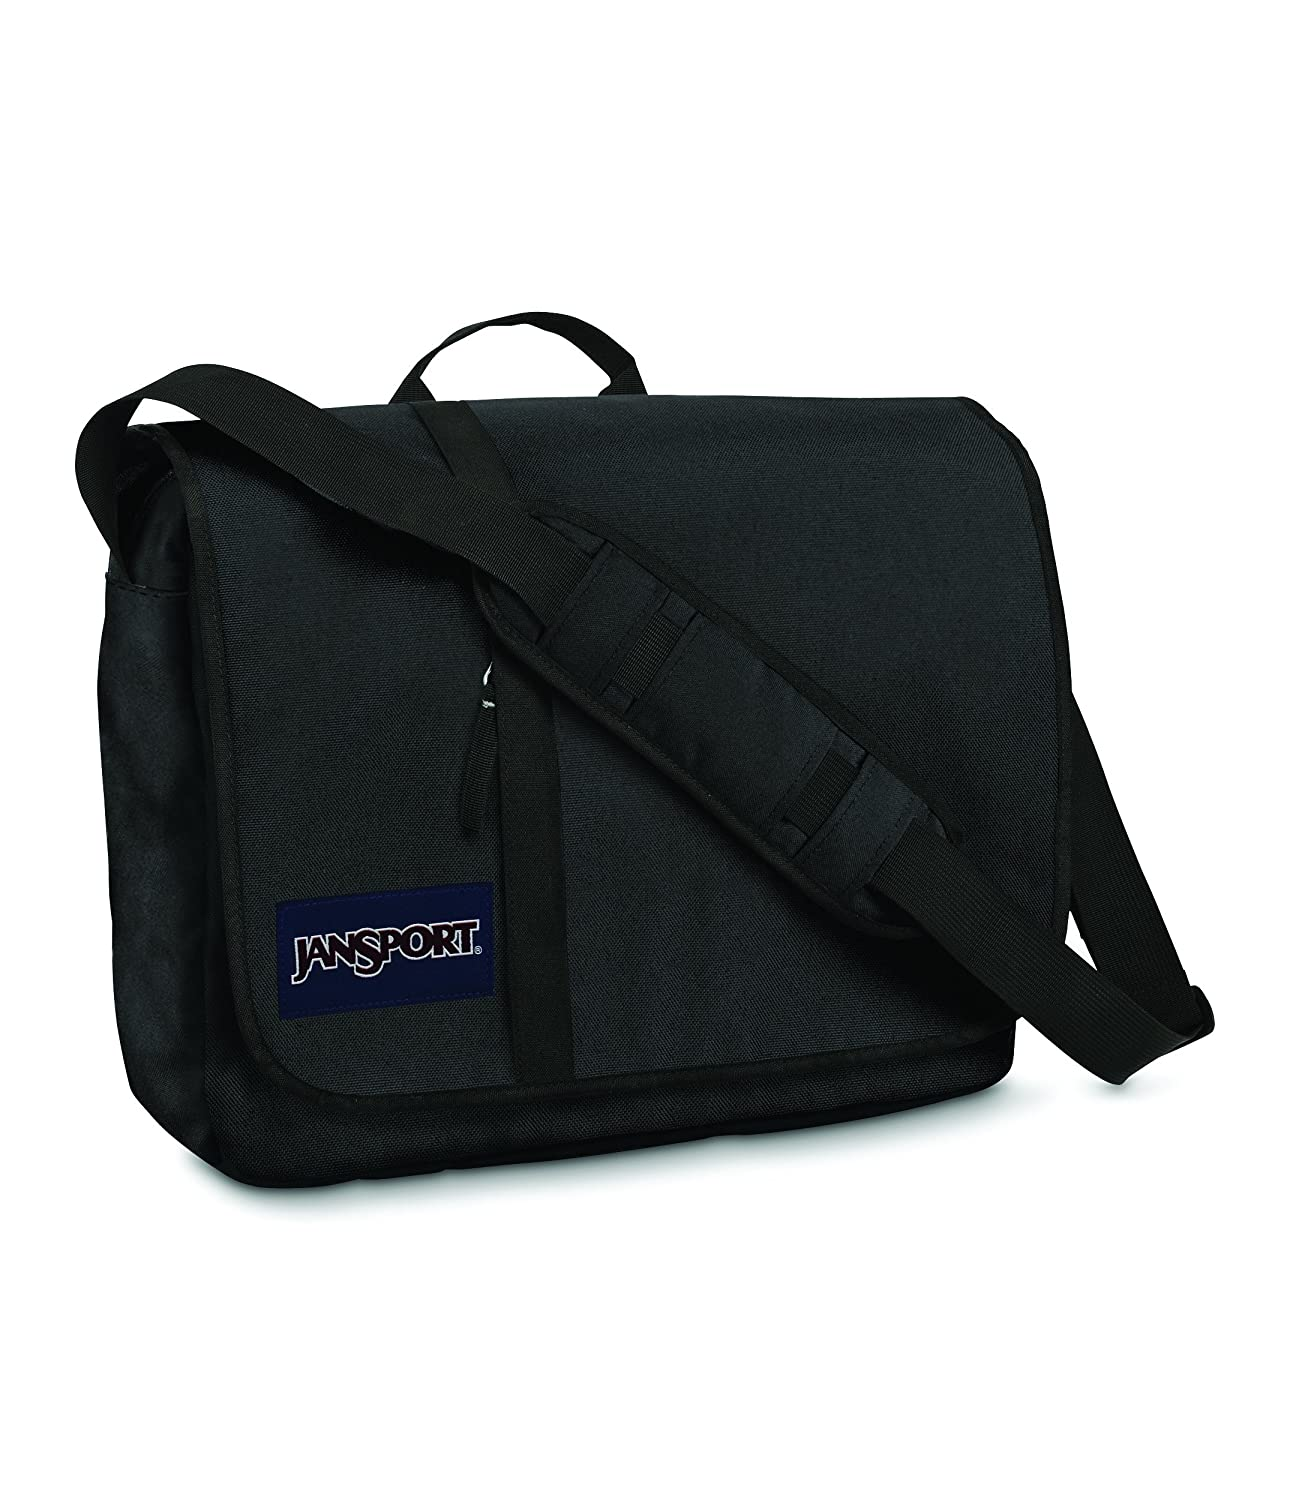 Jansport Shoulder Satchel Bag 23